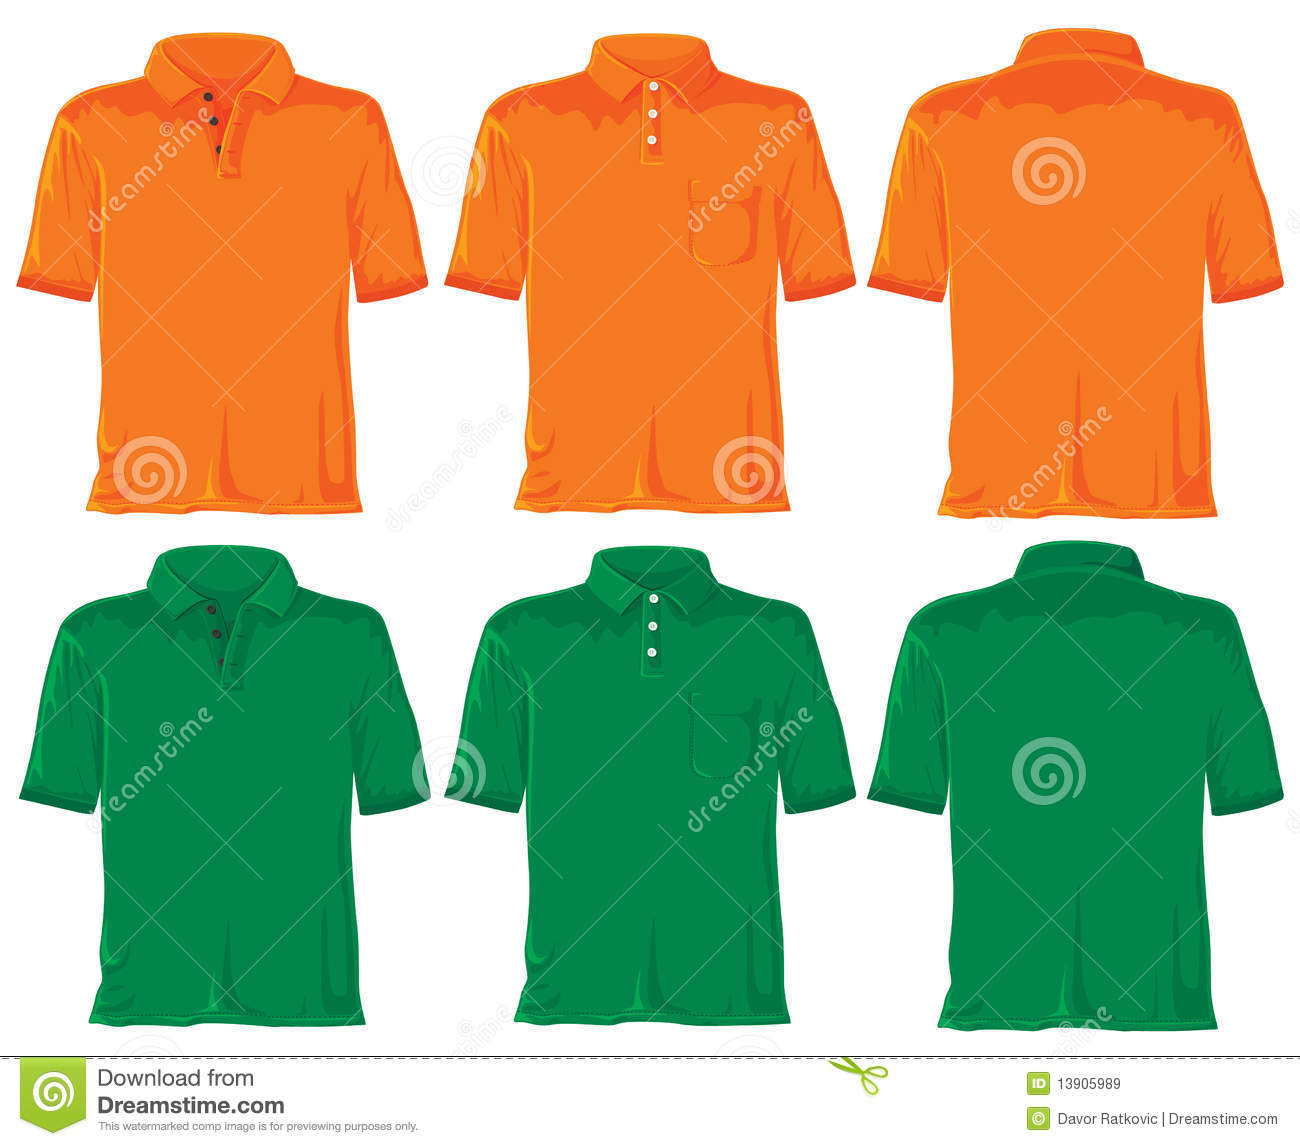 Polo shirt set orange green royalty free stock images for Polo shirts without buttons